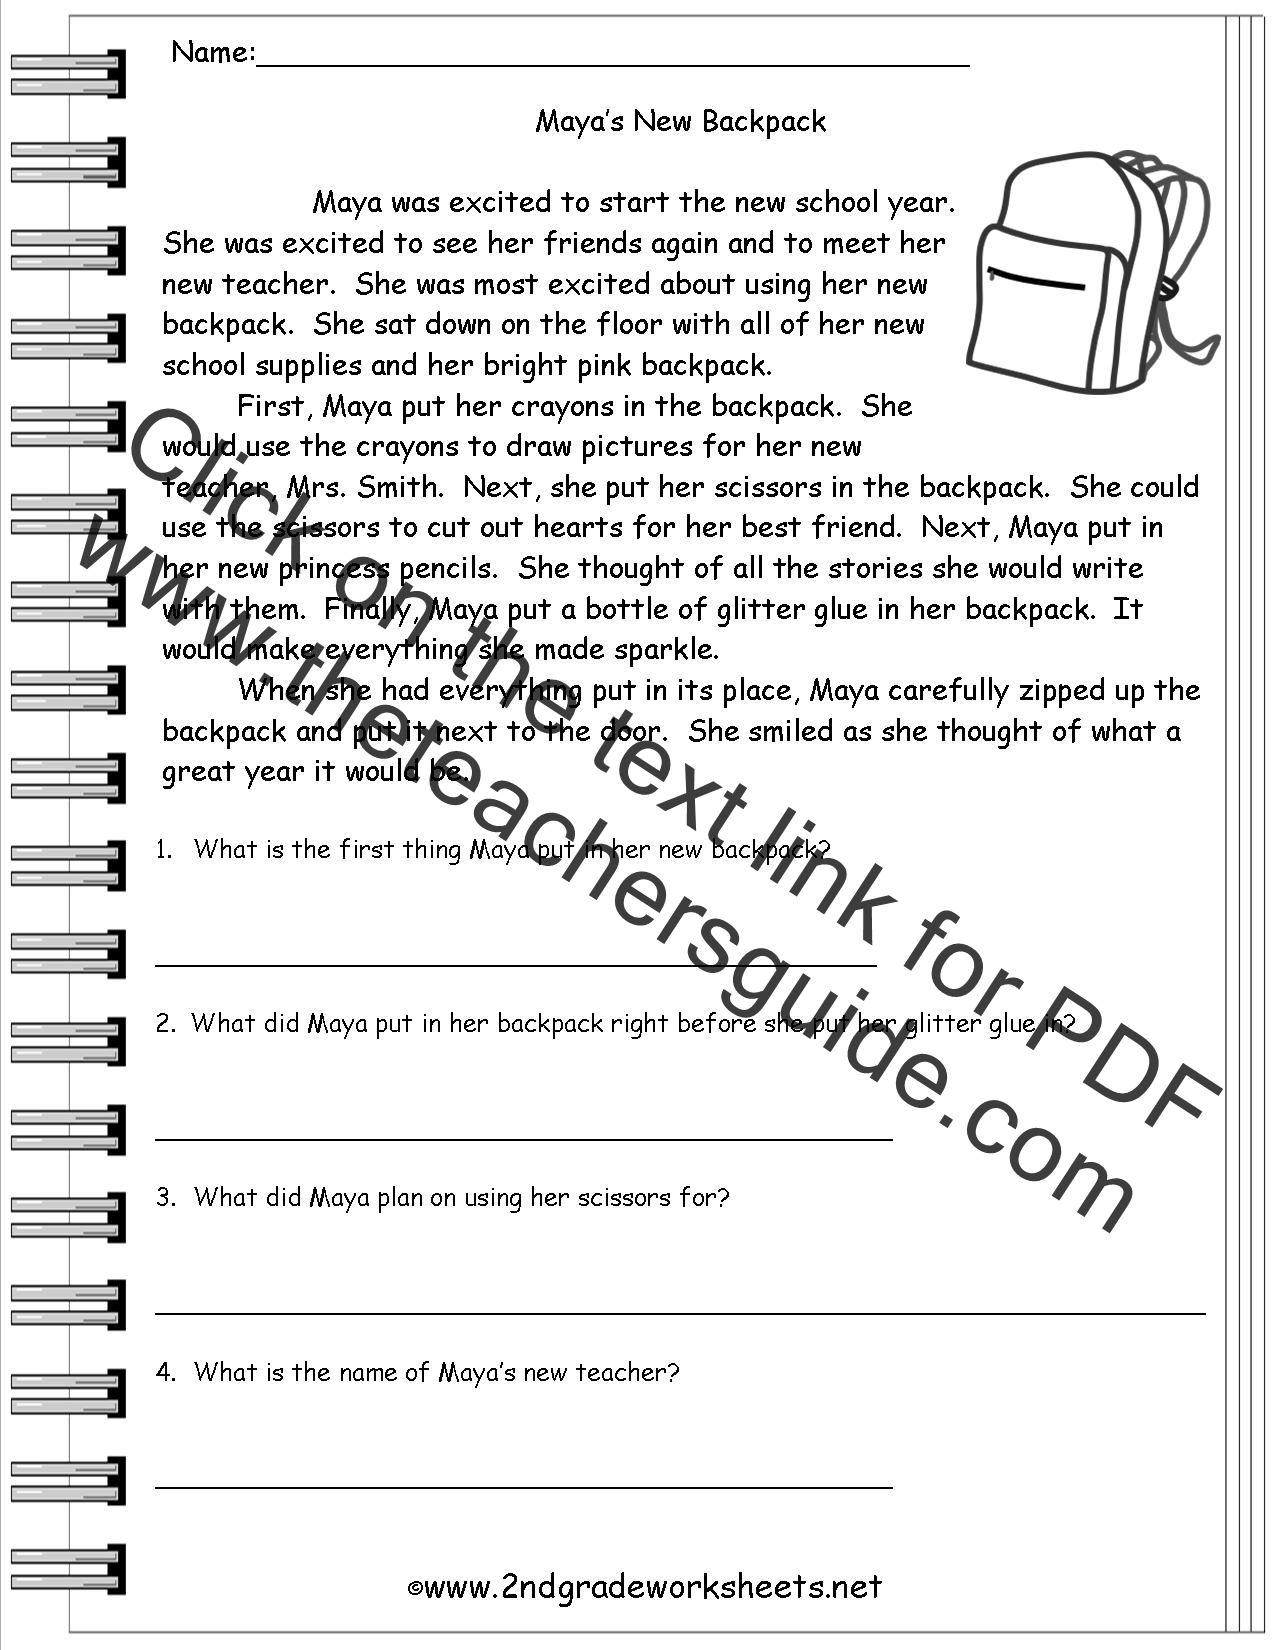 Worksheet Short Story 5th Grade worksheet short story worksheets joindesignseattle reading worksheeets literature worksheets